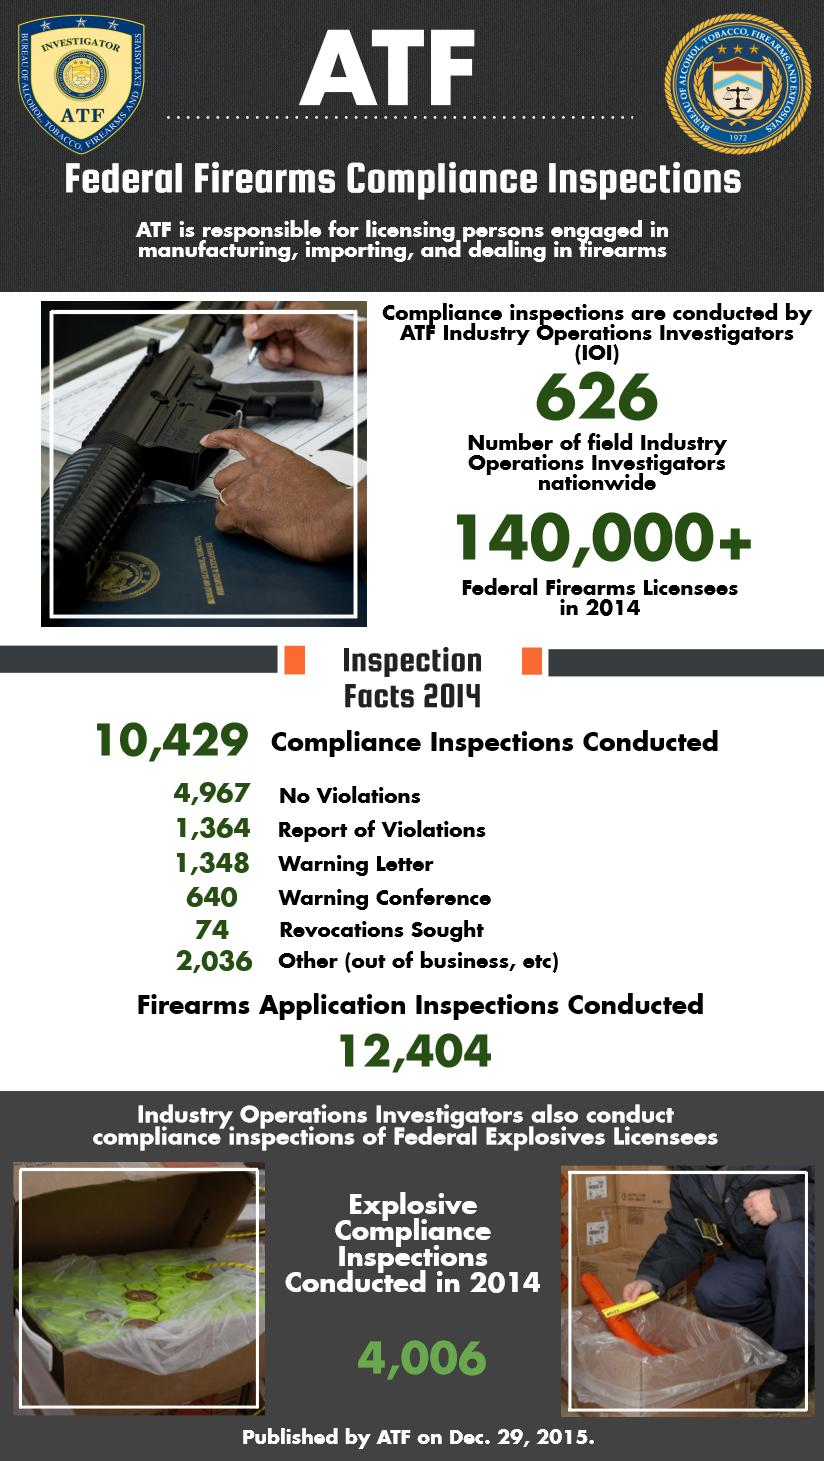 ATF is responsible for licensing persons engaged in manufacturing, importing, and dealing in firearms. Compliance inspections are conducted by ATF Industry Operations Investigators.